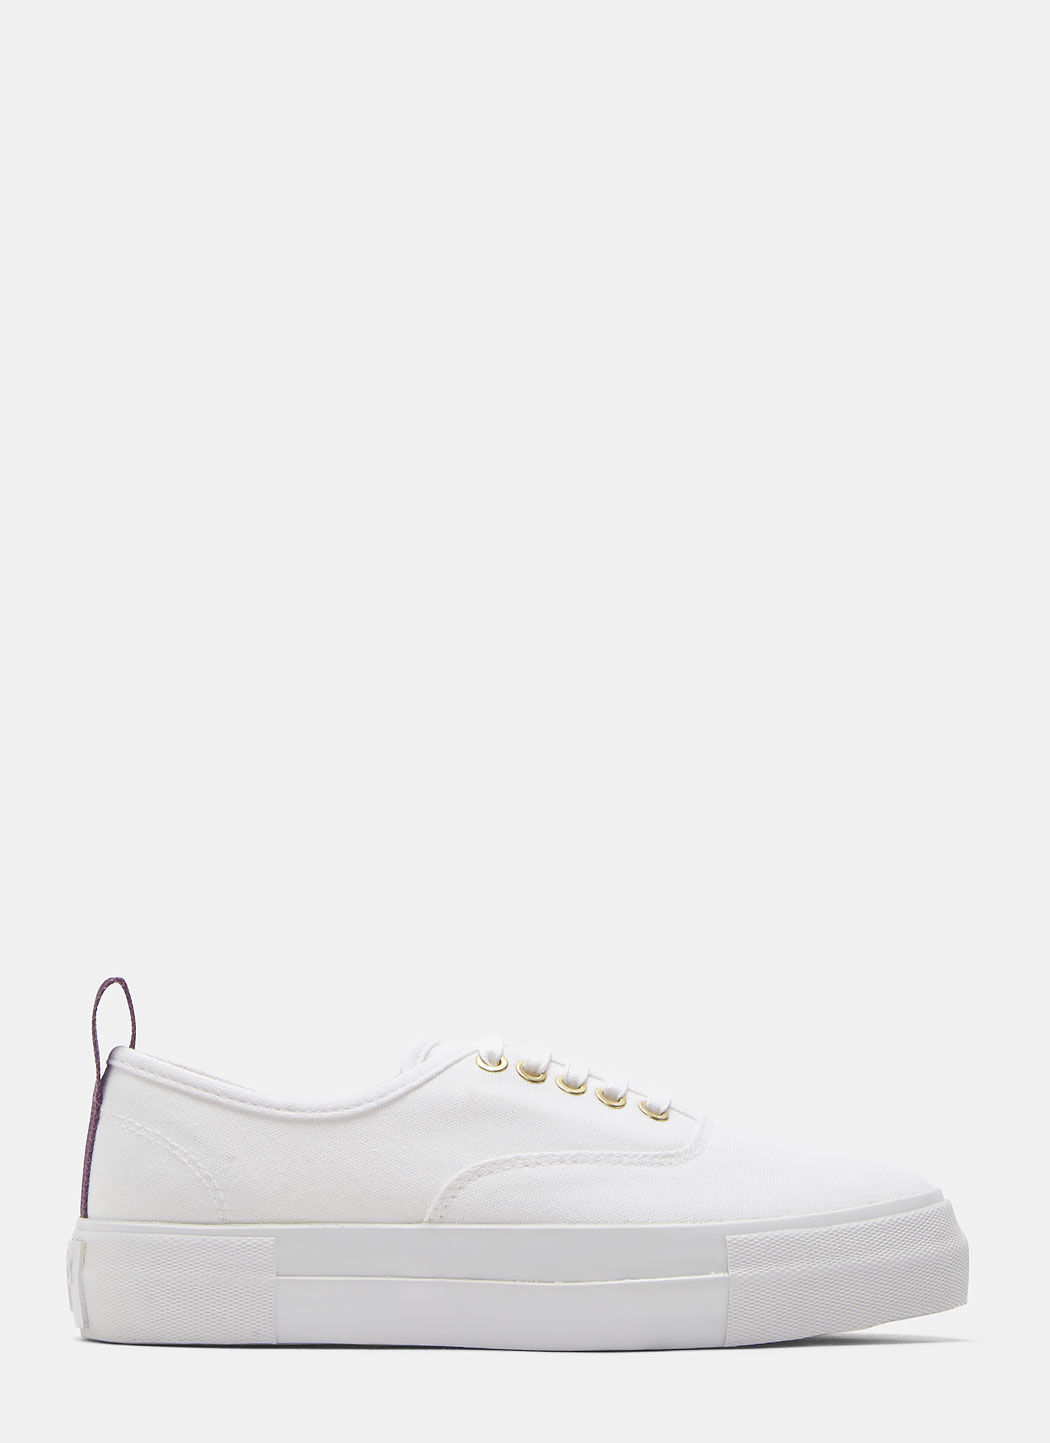 Mother Sneakers in White